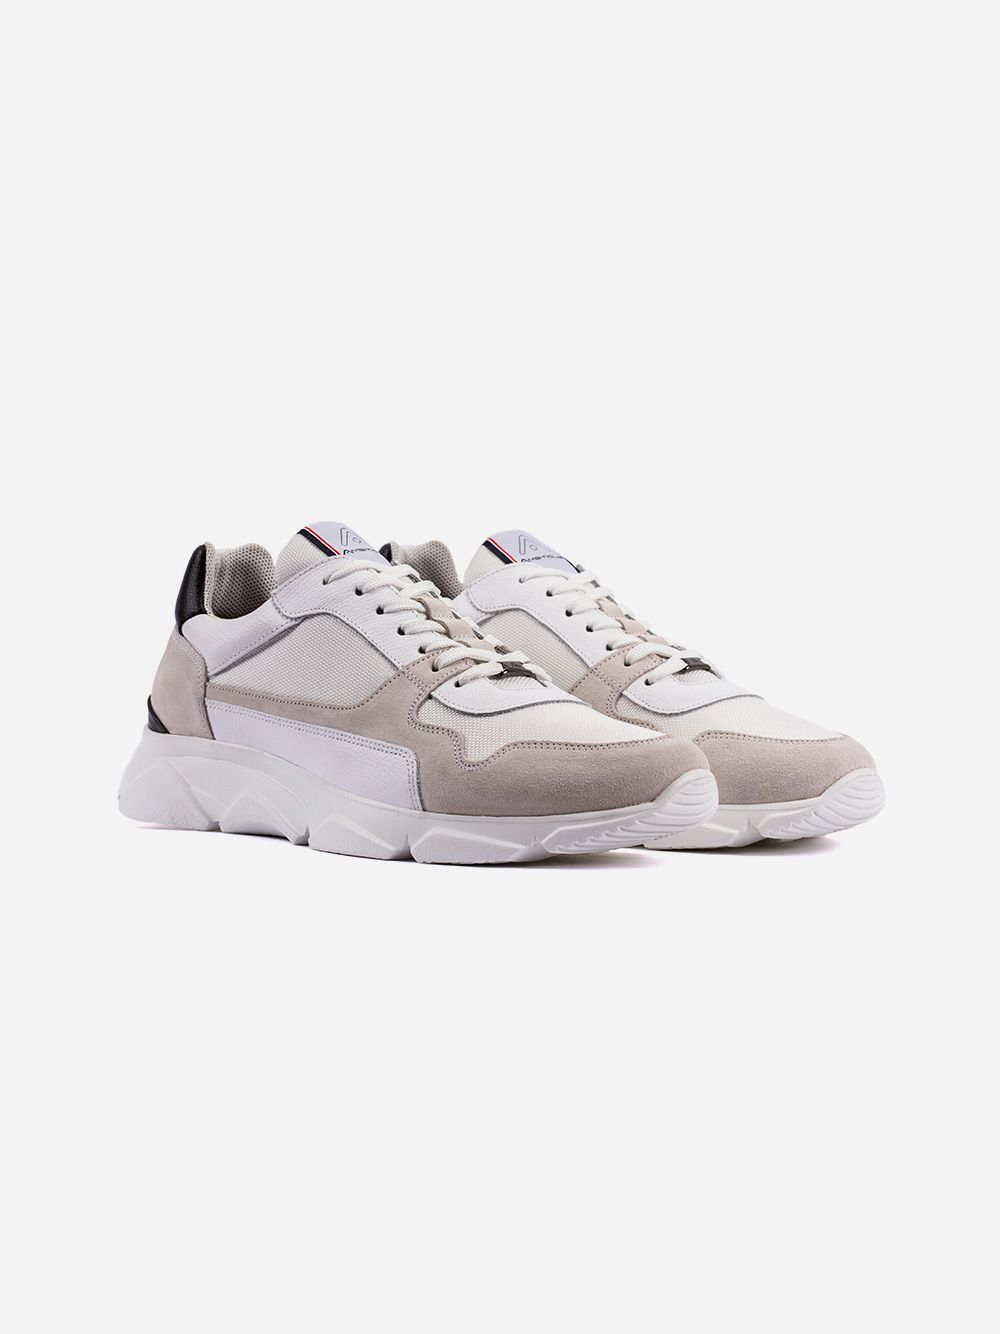 White and grey Sneakers | AMBITIOUS